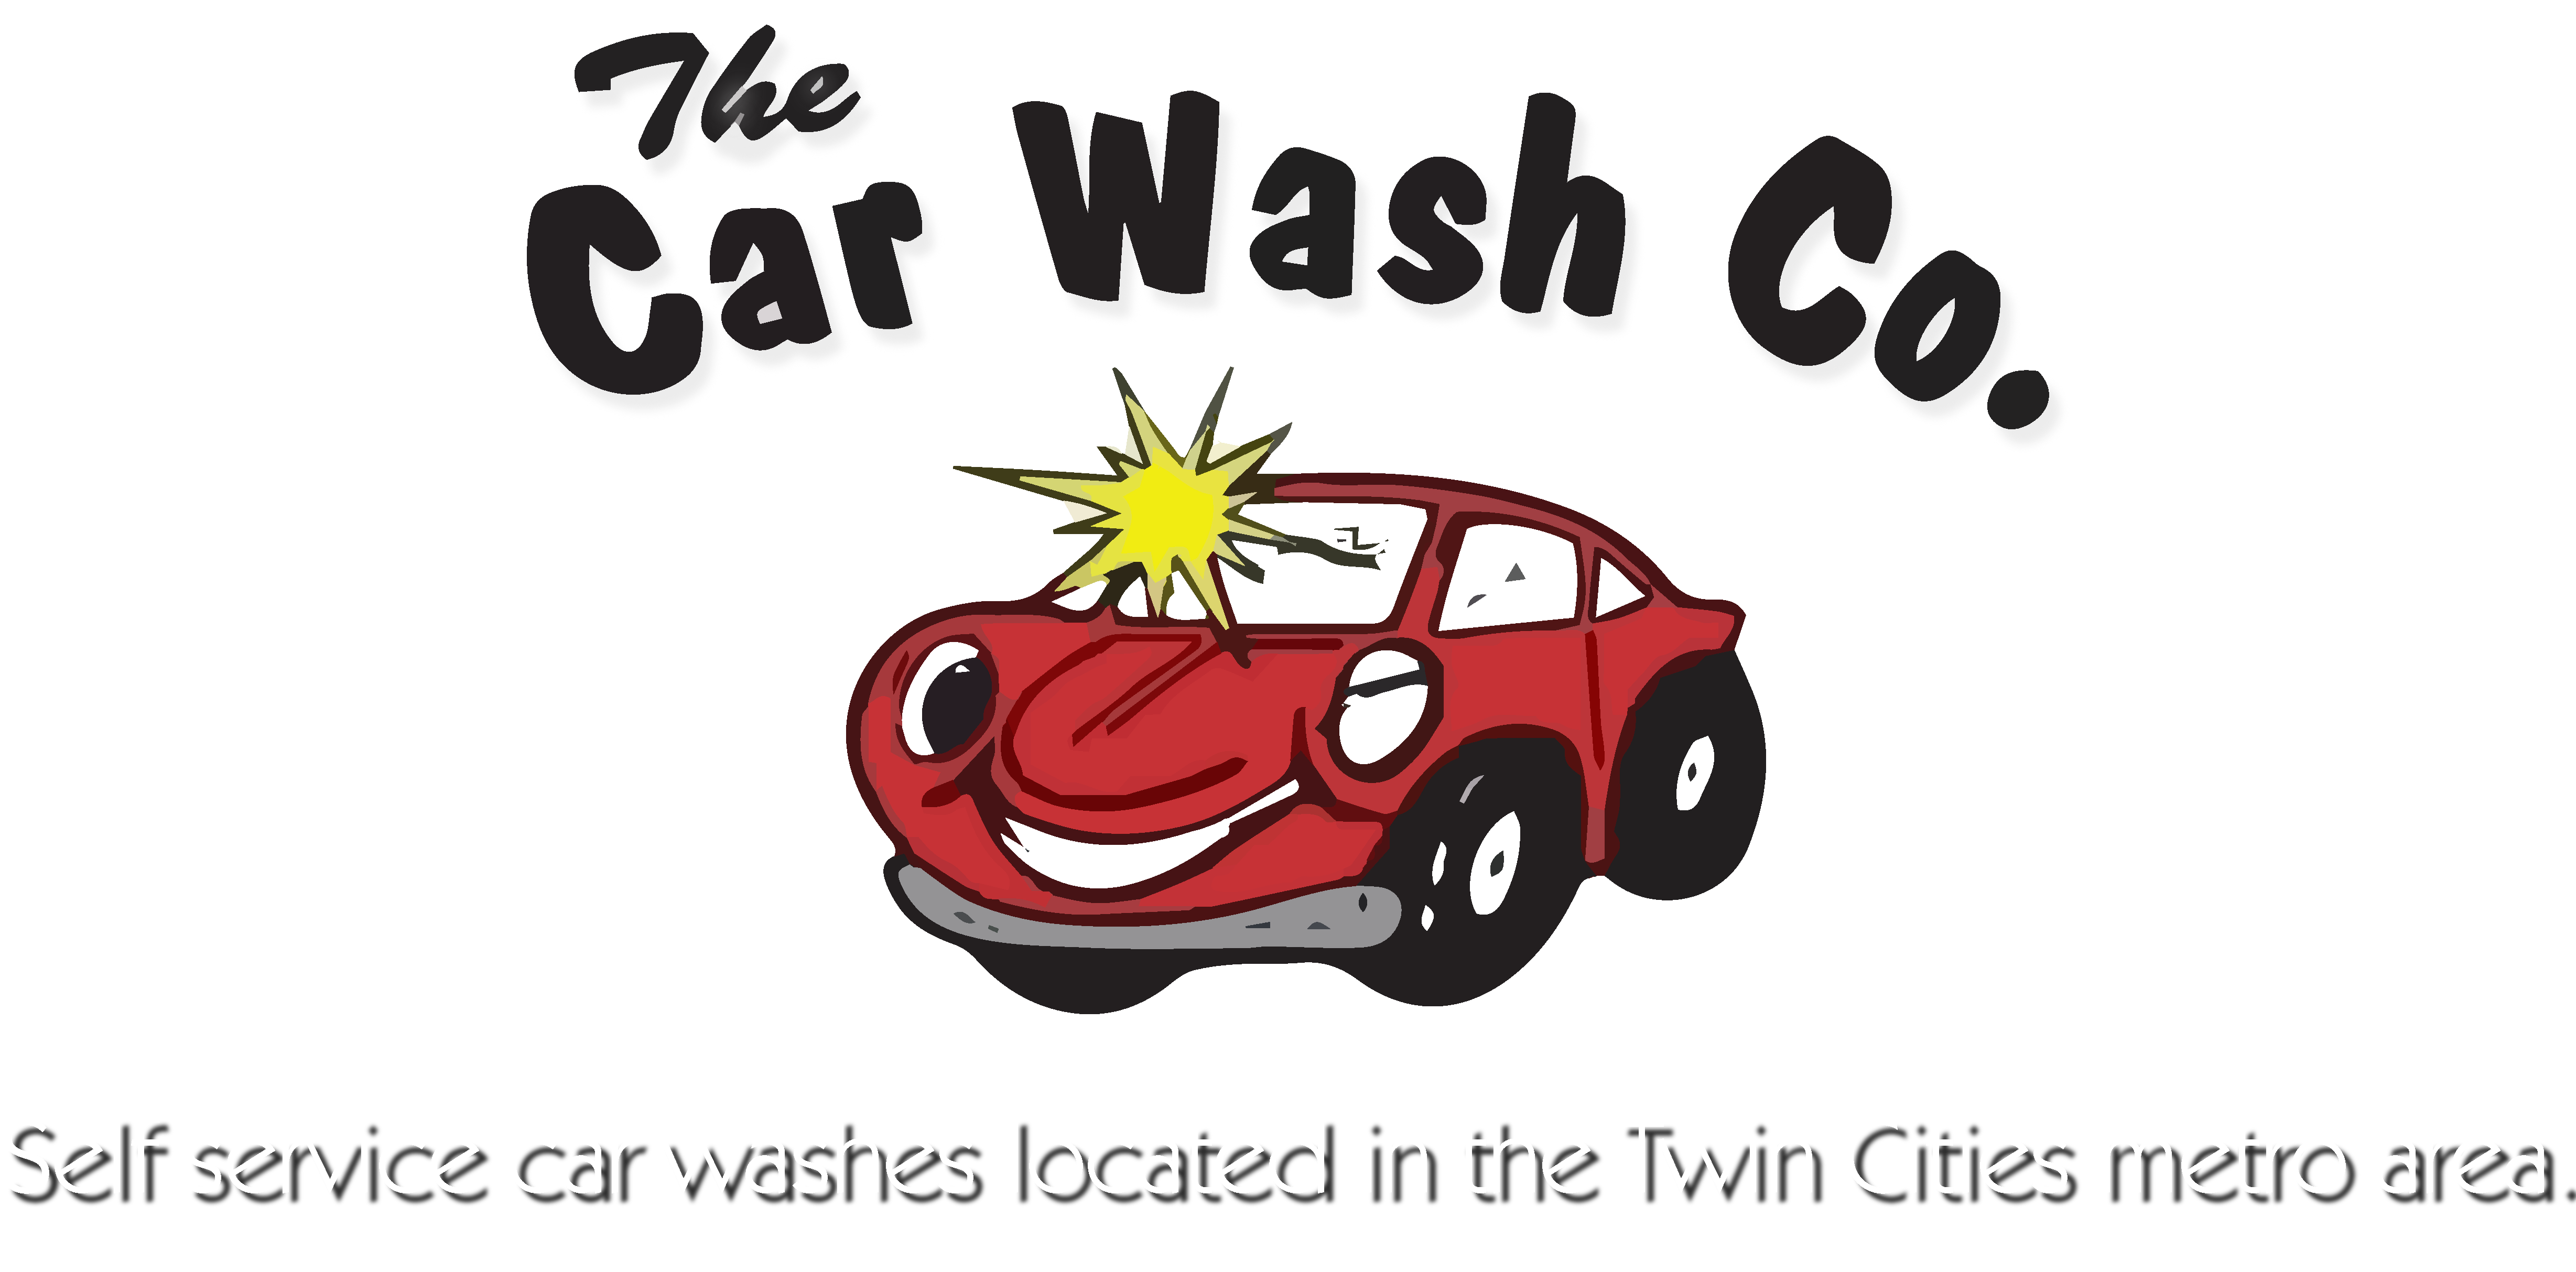 The Car Wash Co.